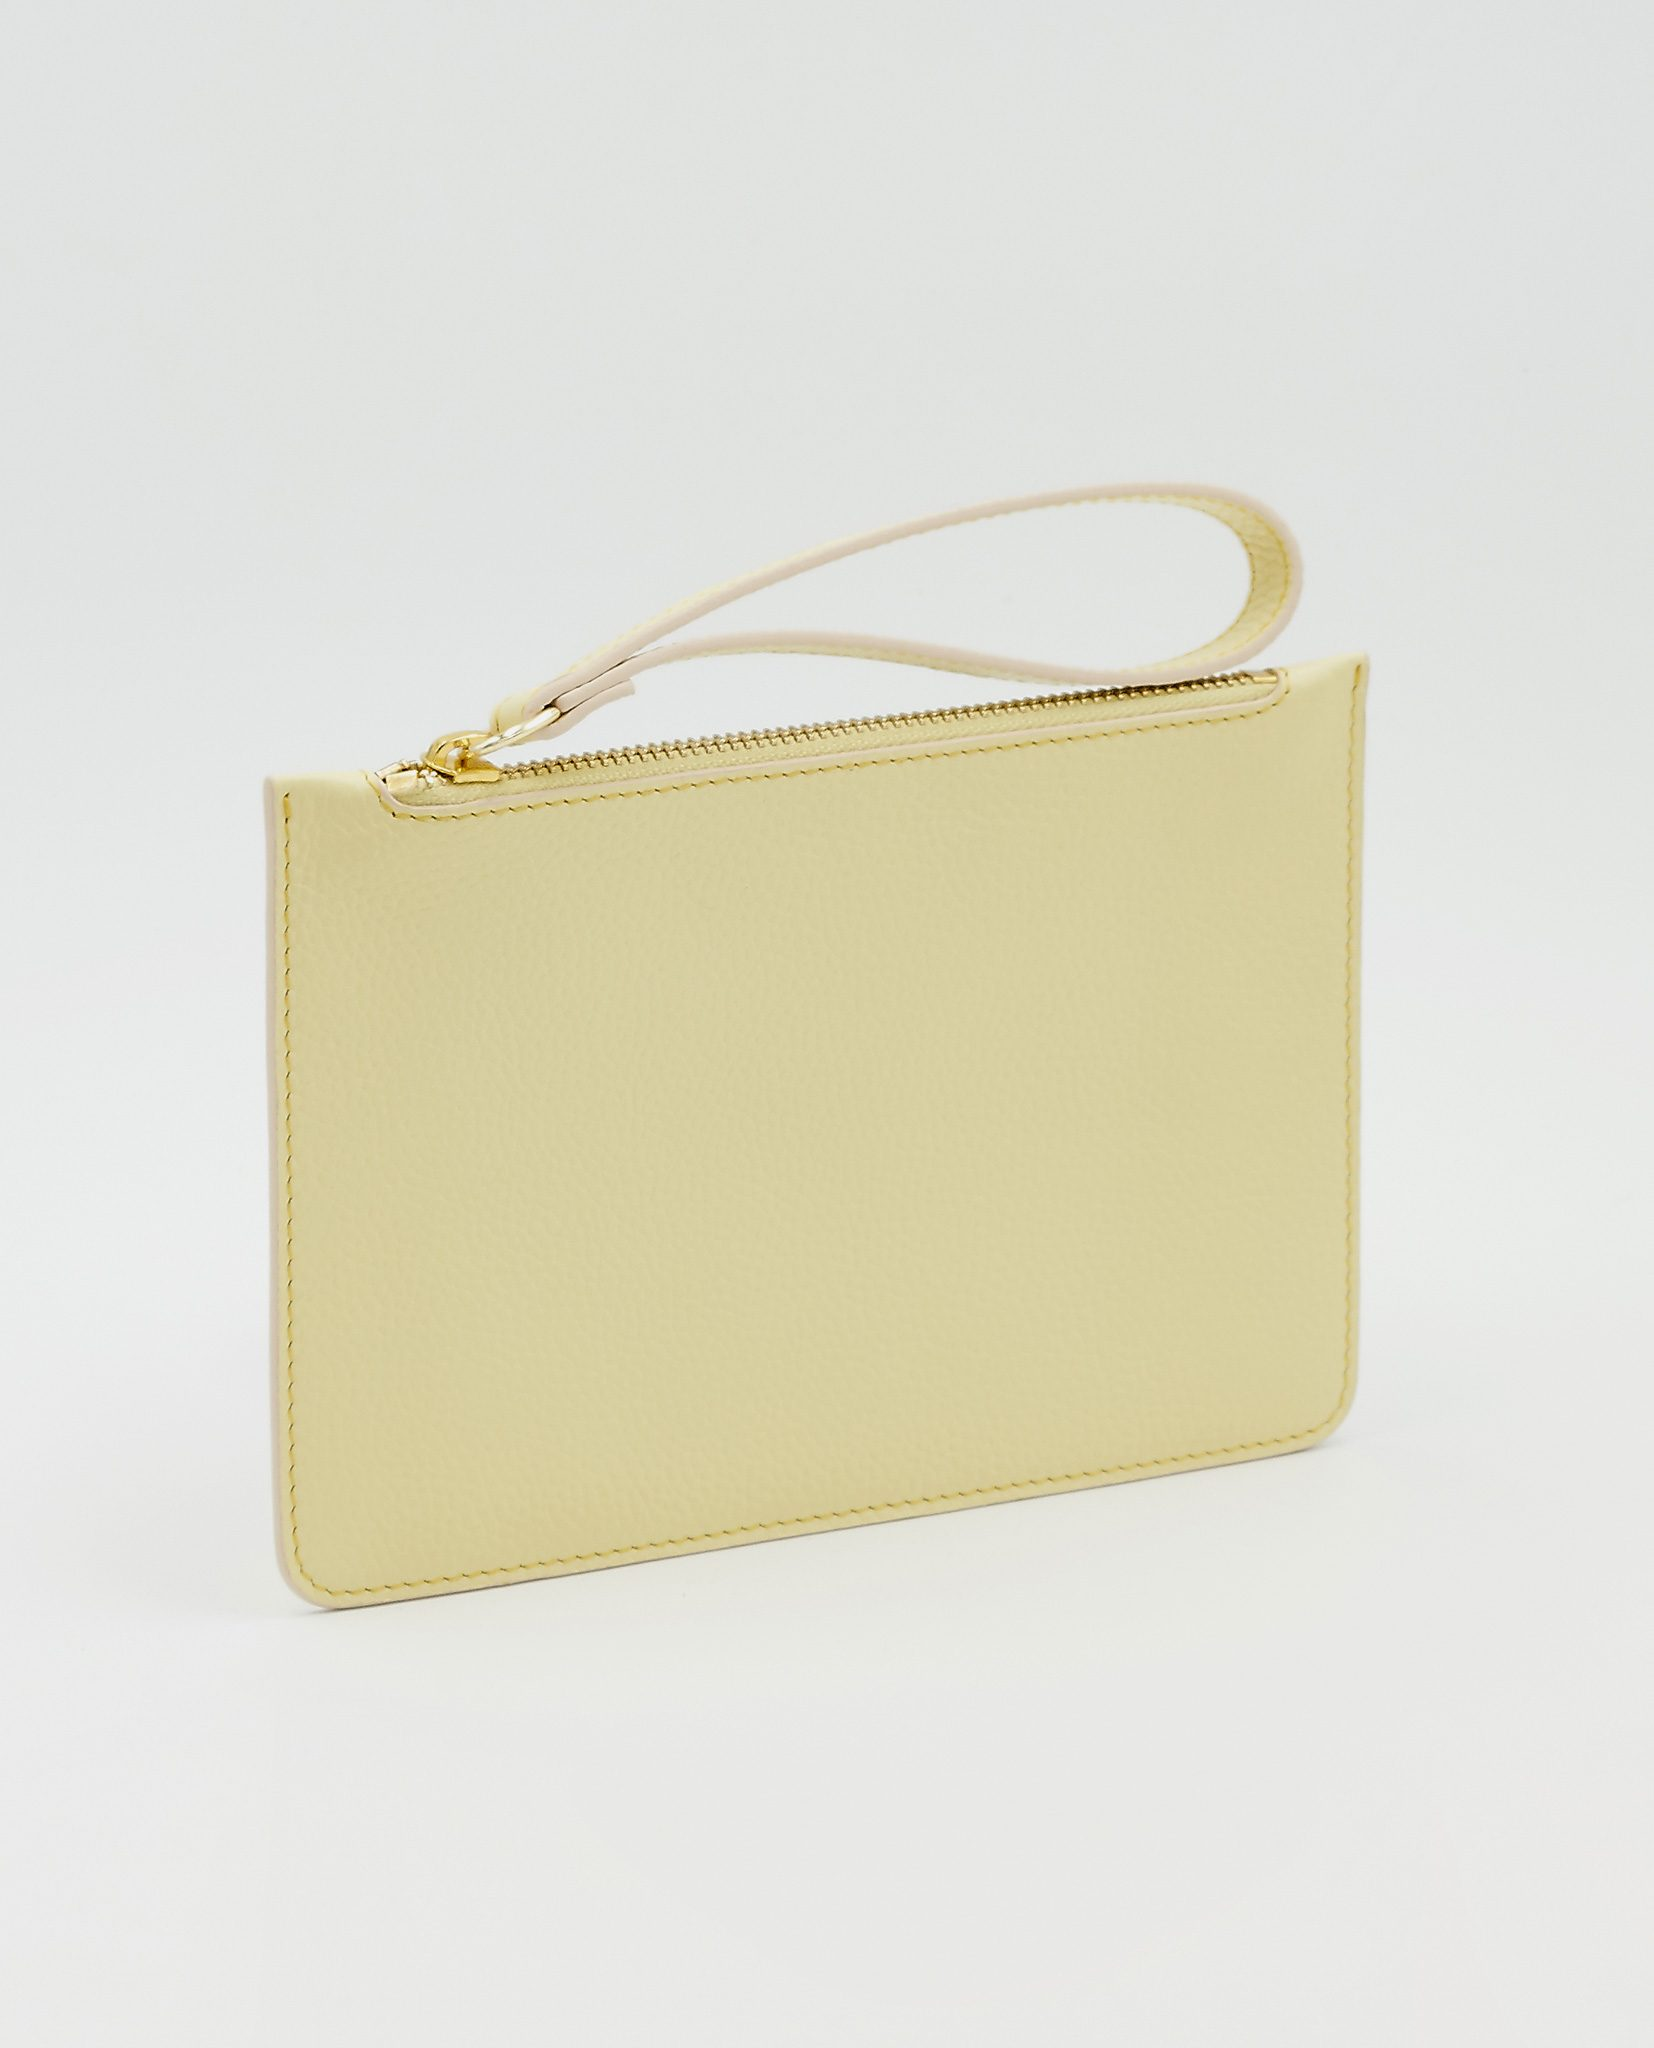 Soofre_Small-Pouch_Light-Yellow_1